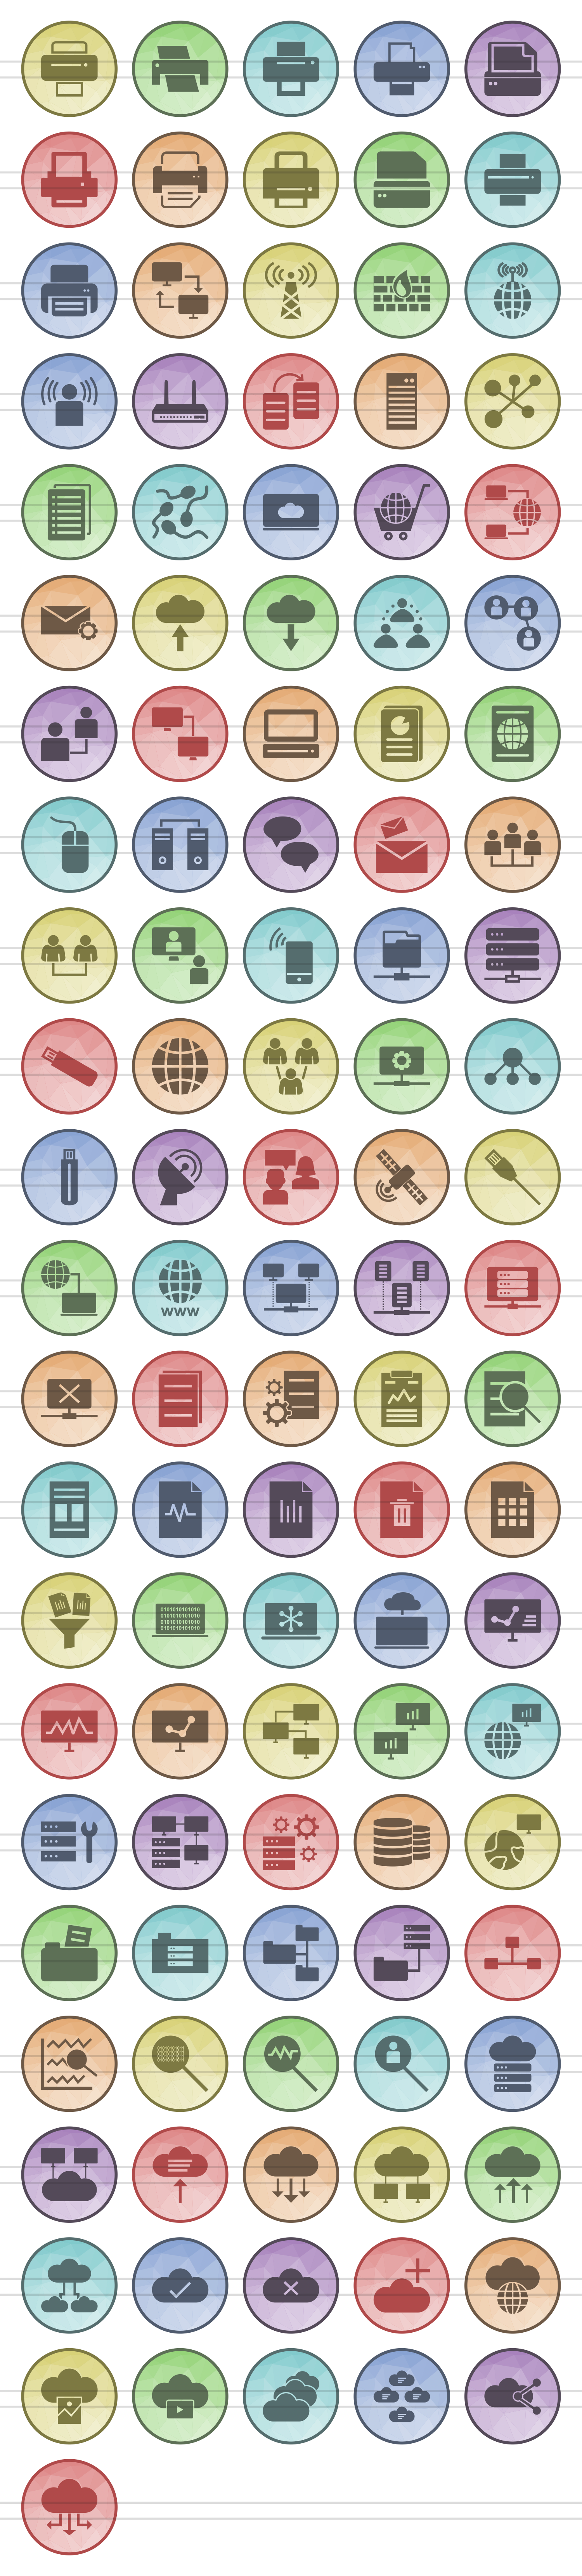 111 Networking & Printers Filled Low Poly Icons example image 2